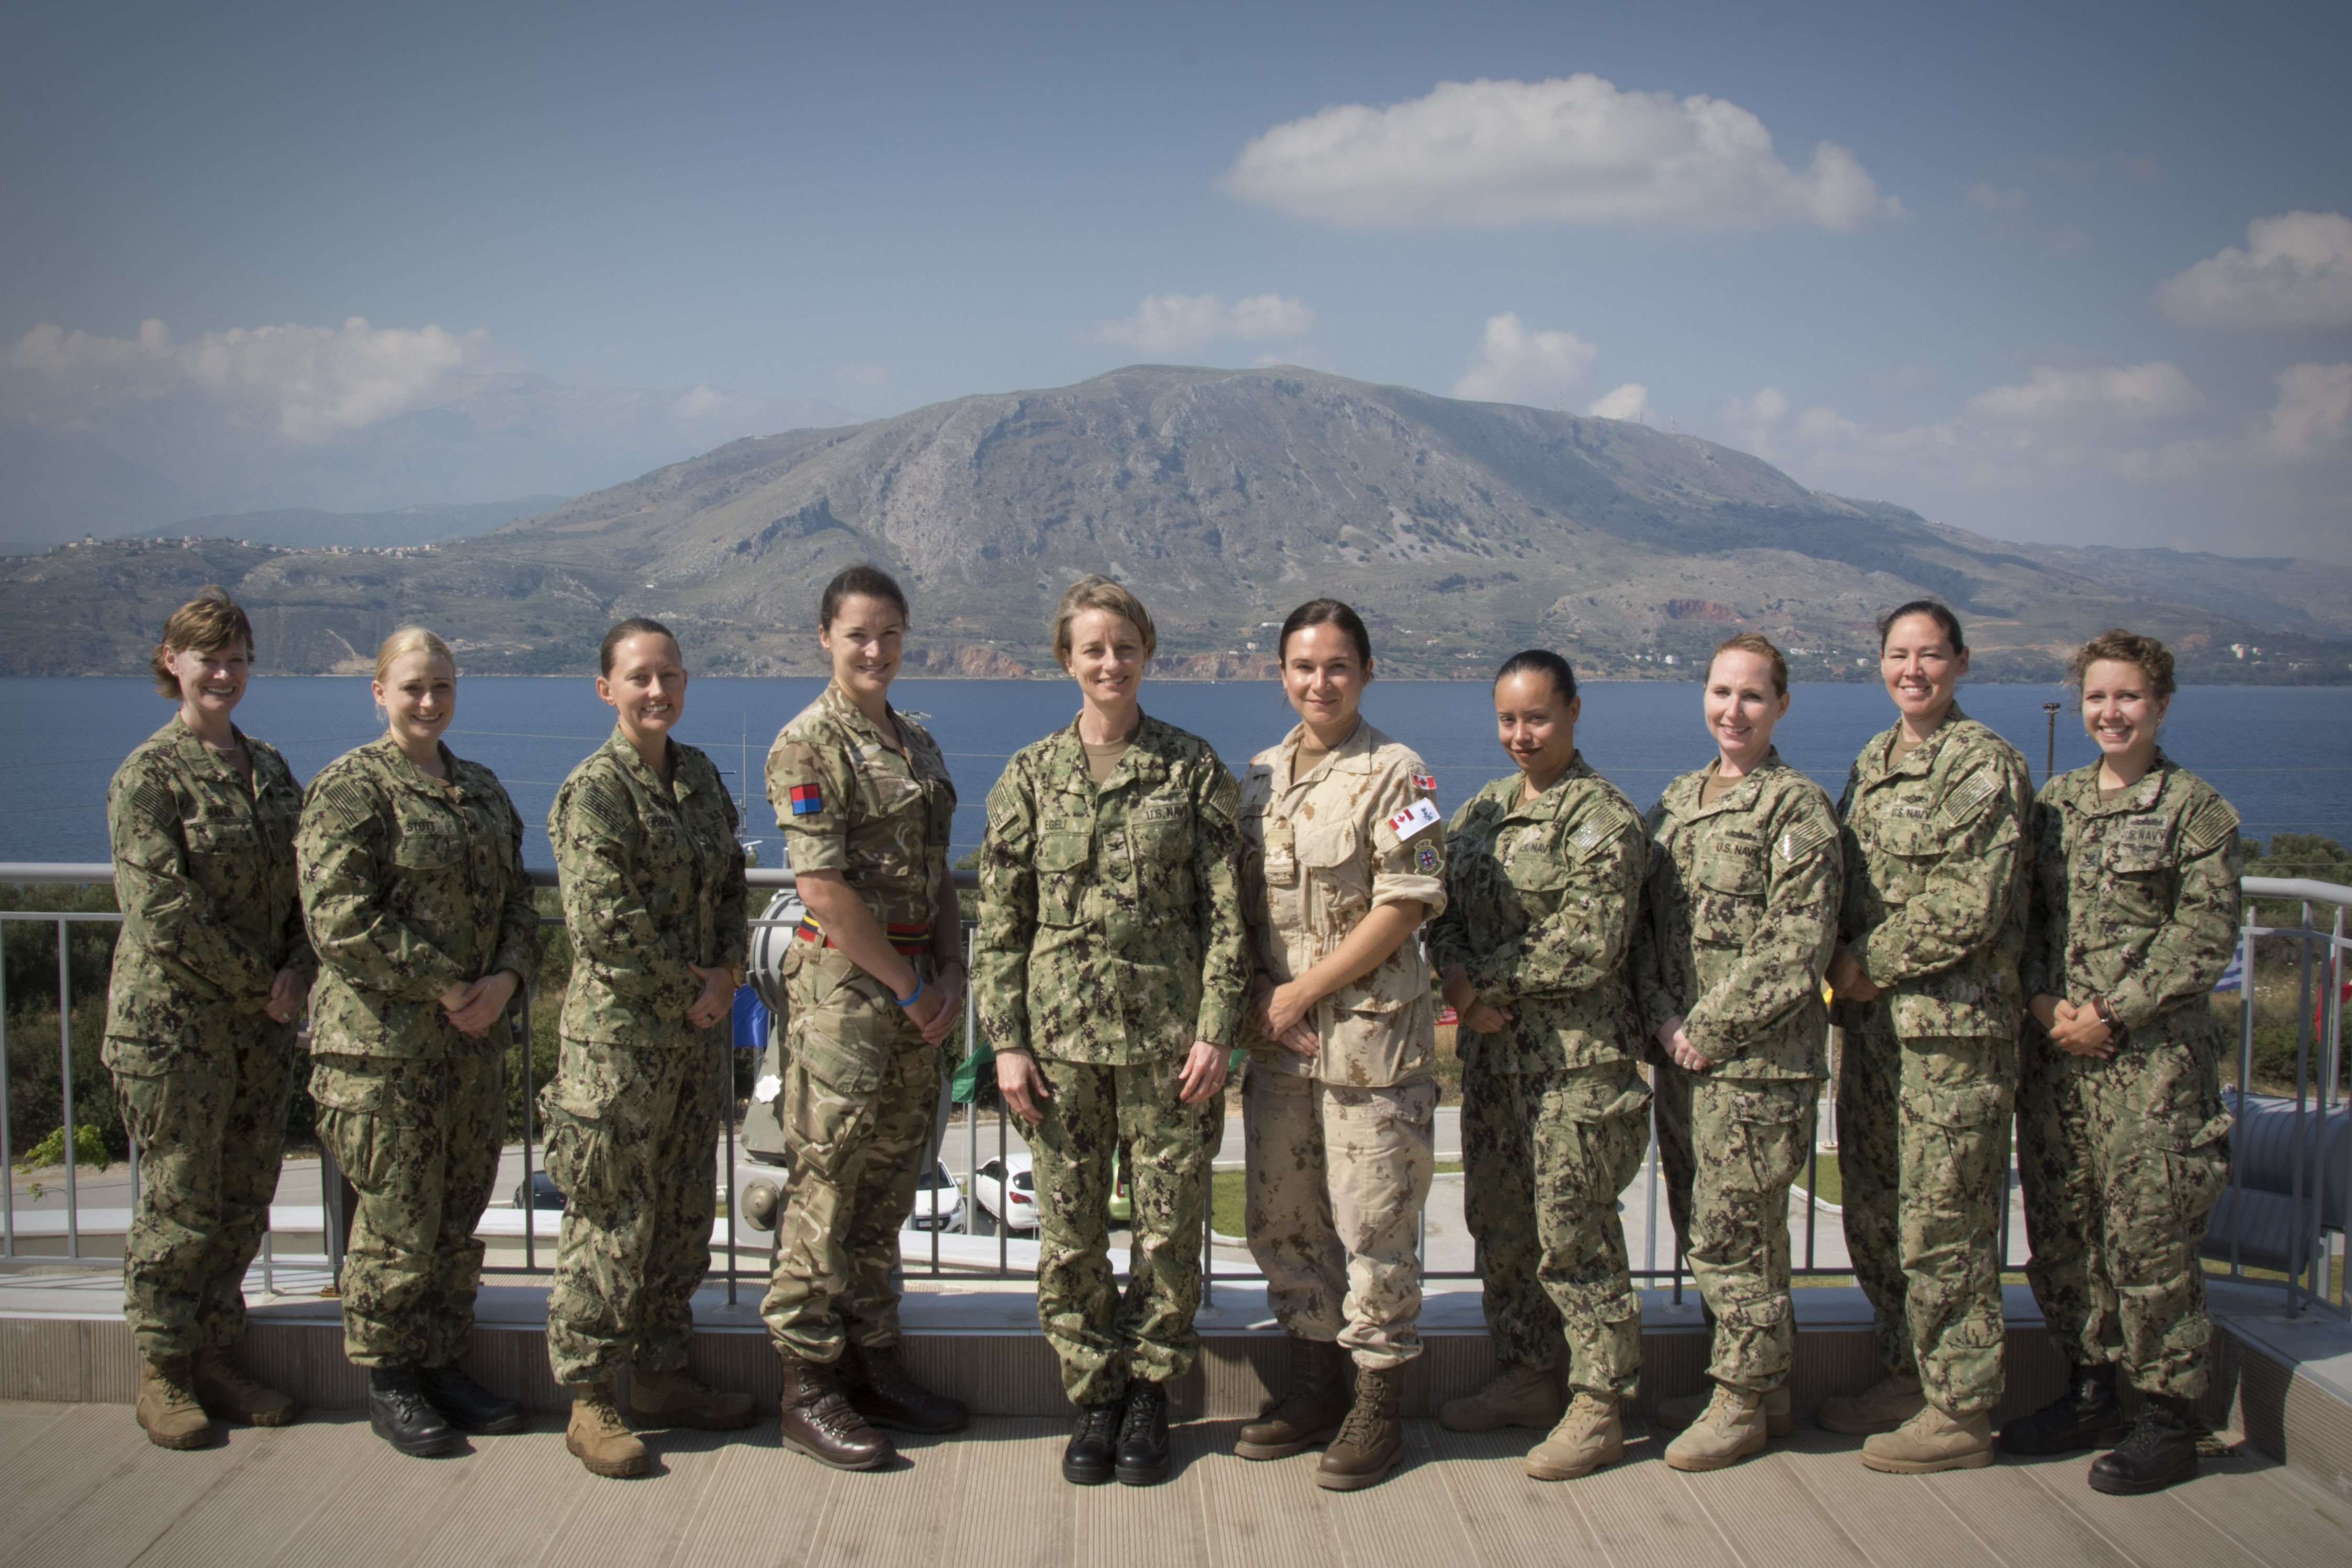 SOUDA BAY, Greece (May 8, 2018) Multinational representation pose for a photo at the NATO Maritime Interdiction Operation Training Center during exercise Phoenix Express in Souda Bay, Greece, May 8, 2018. Phoenix Express is sponsored by U.S. Africa Command and facilitated by U.S. Naval Forces Europe-Africa/U.S. 6th Fleet, and is designed to improve regional cooperation, increase maritime domain to improve regional cooperation, increase maritime domain awareness information-sharing practices, and operational capabilities to enhance efforts to achieve safety and security in the Mediterranean Sea. (U.S. Navy photo by Mass Communication Specialist 2nd Class Beverly J. Taylor/Released)